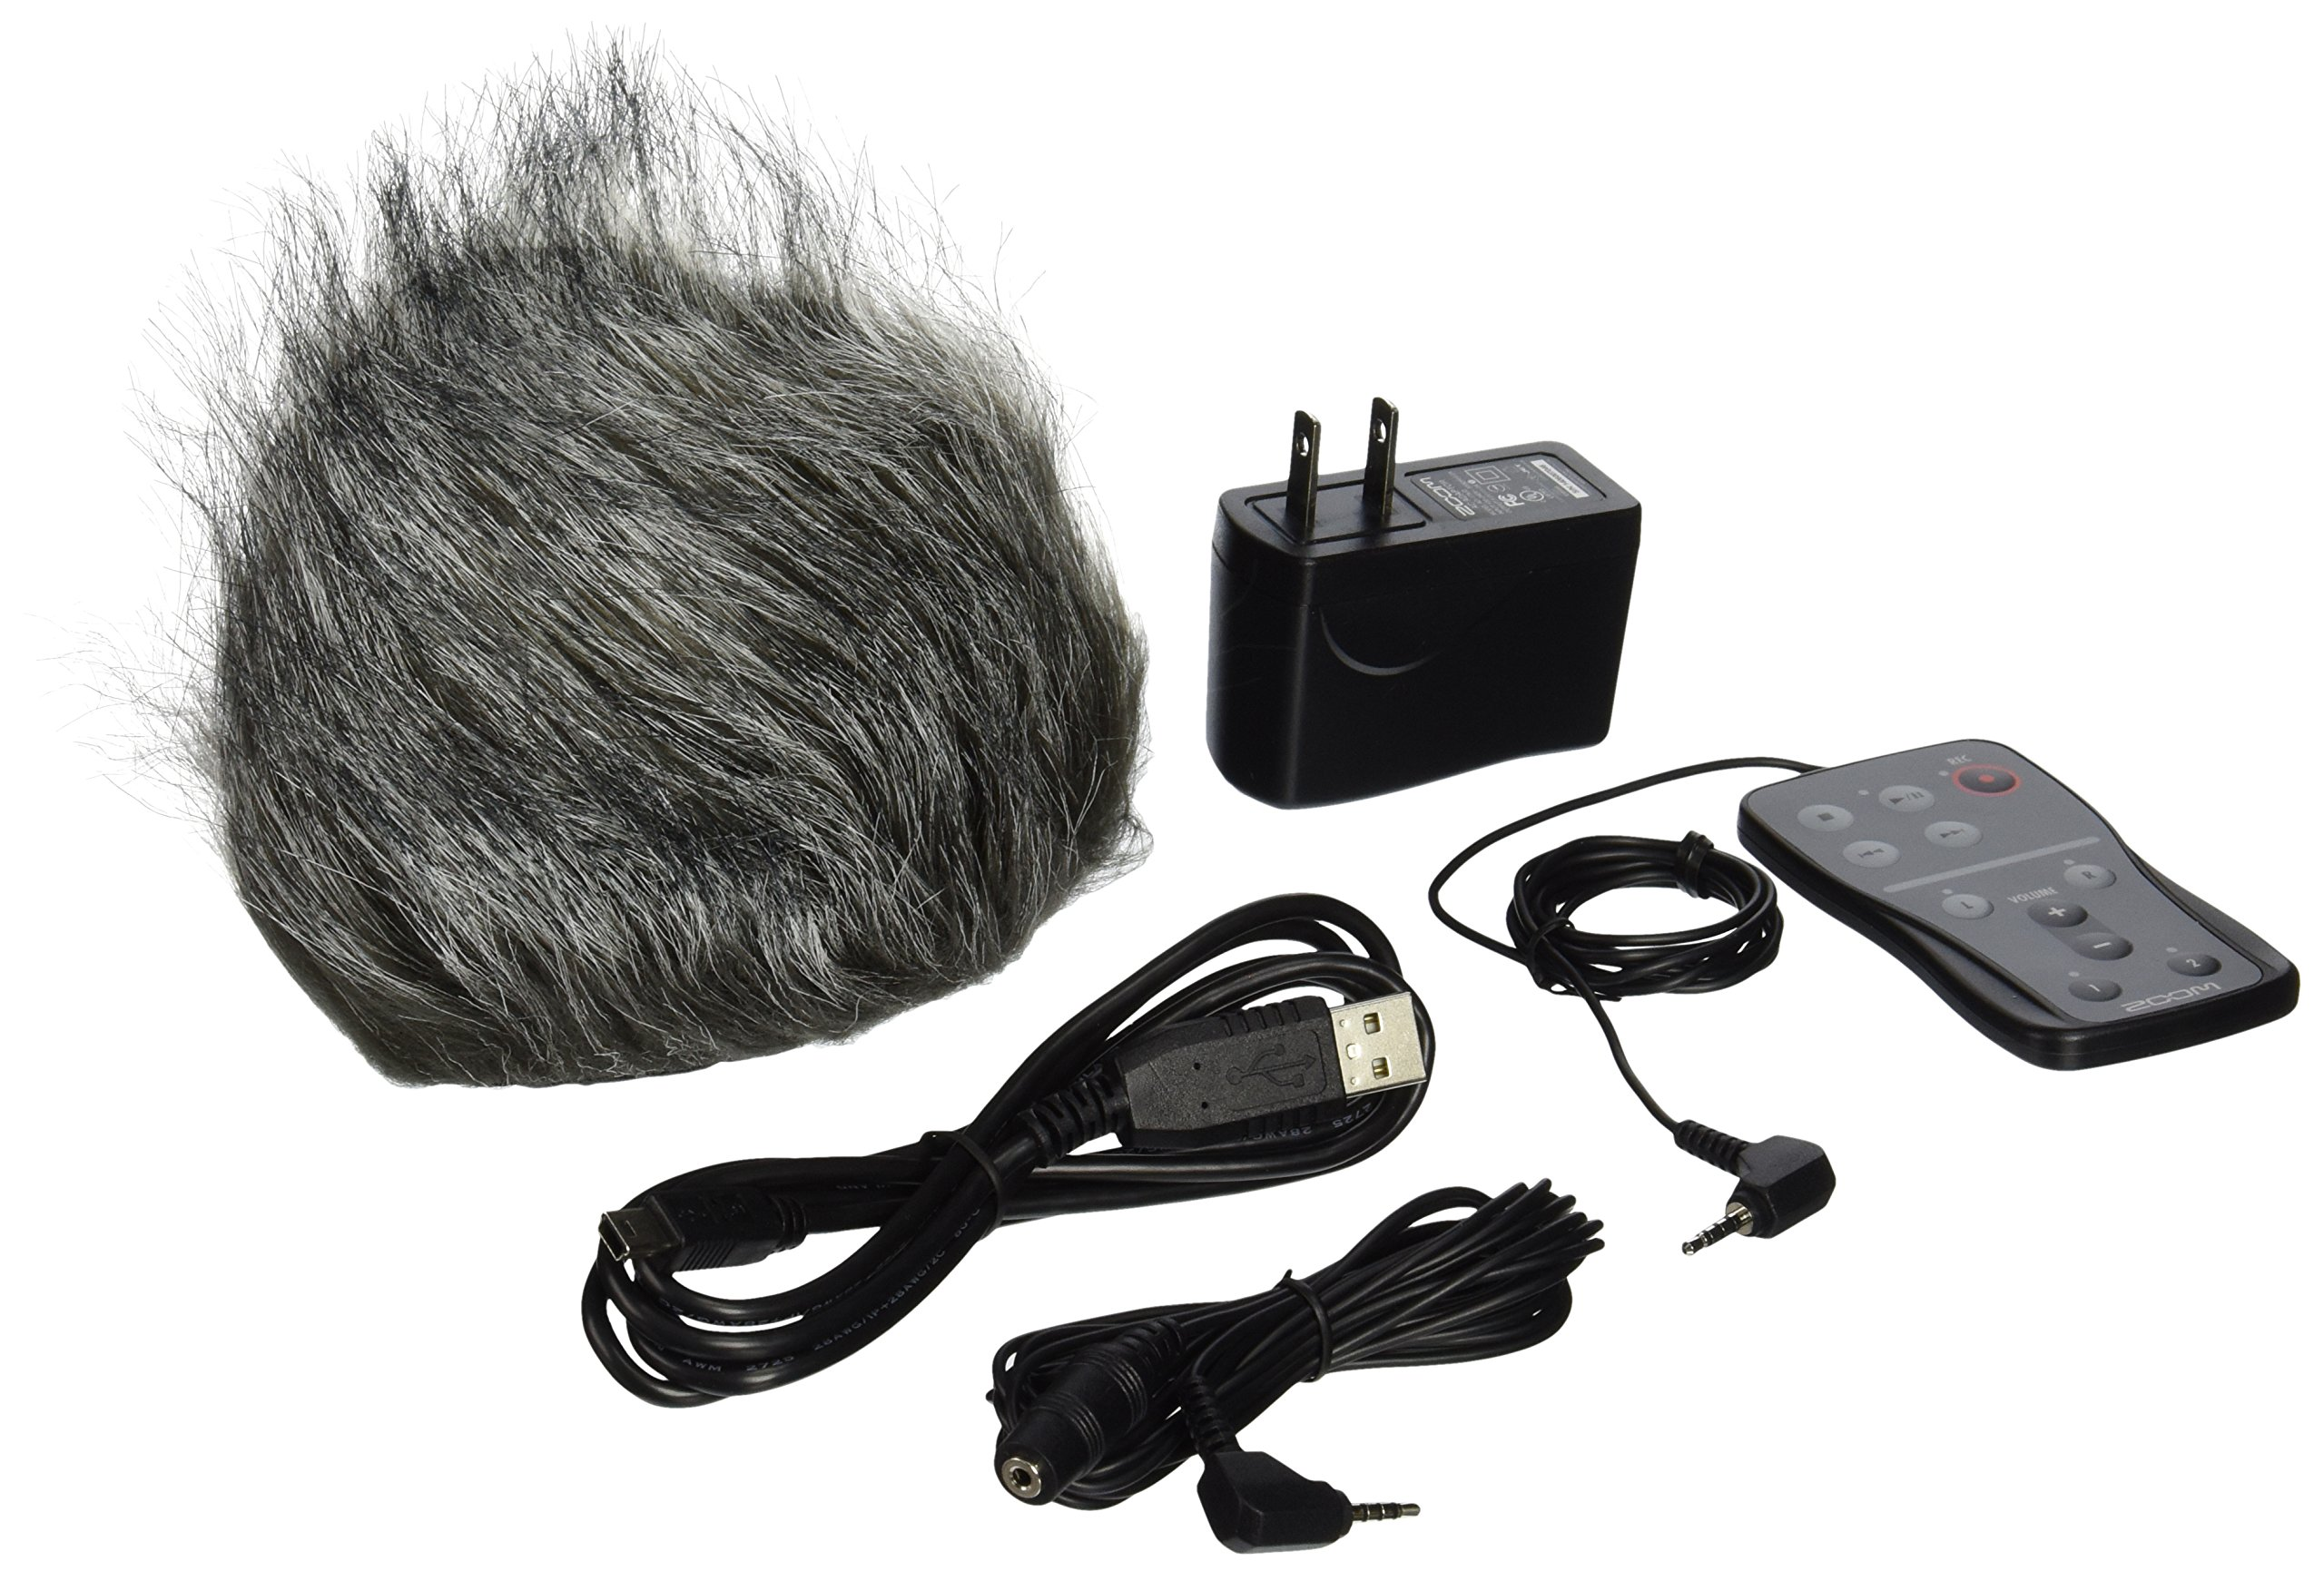 Zoom H5 Four-Track Portable Recorder with Zoom APH-5 Accessory Pack for H5